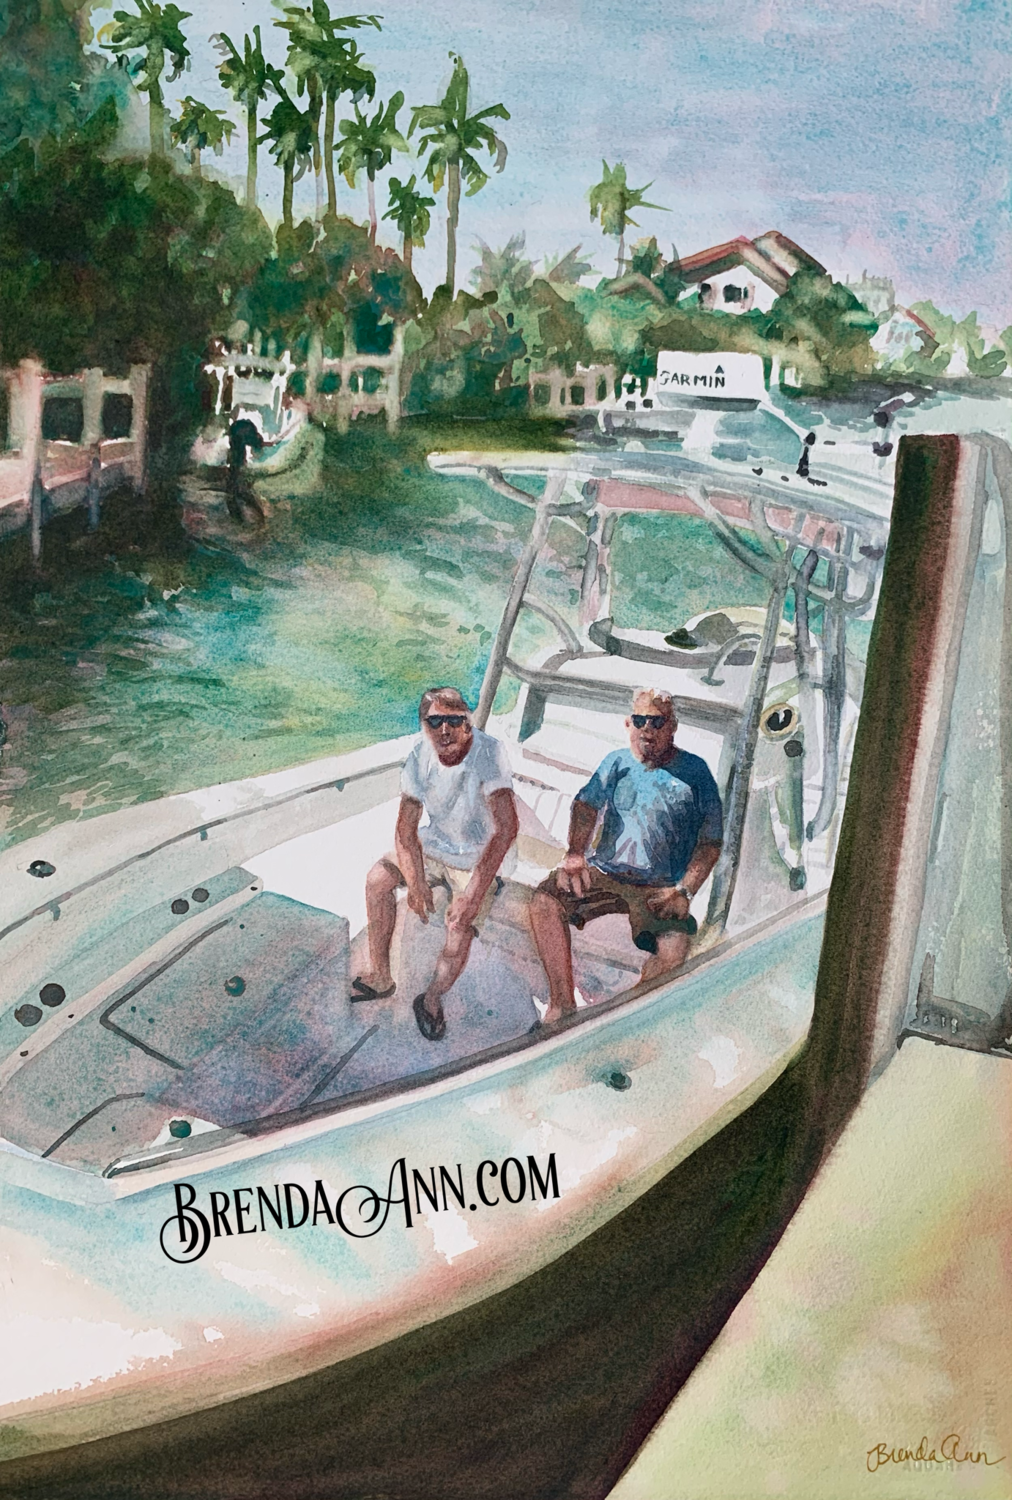 Custom House, Vehicle, or Boat Portrait - 11x14 inch Original Watercolor Painting Made To Order